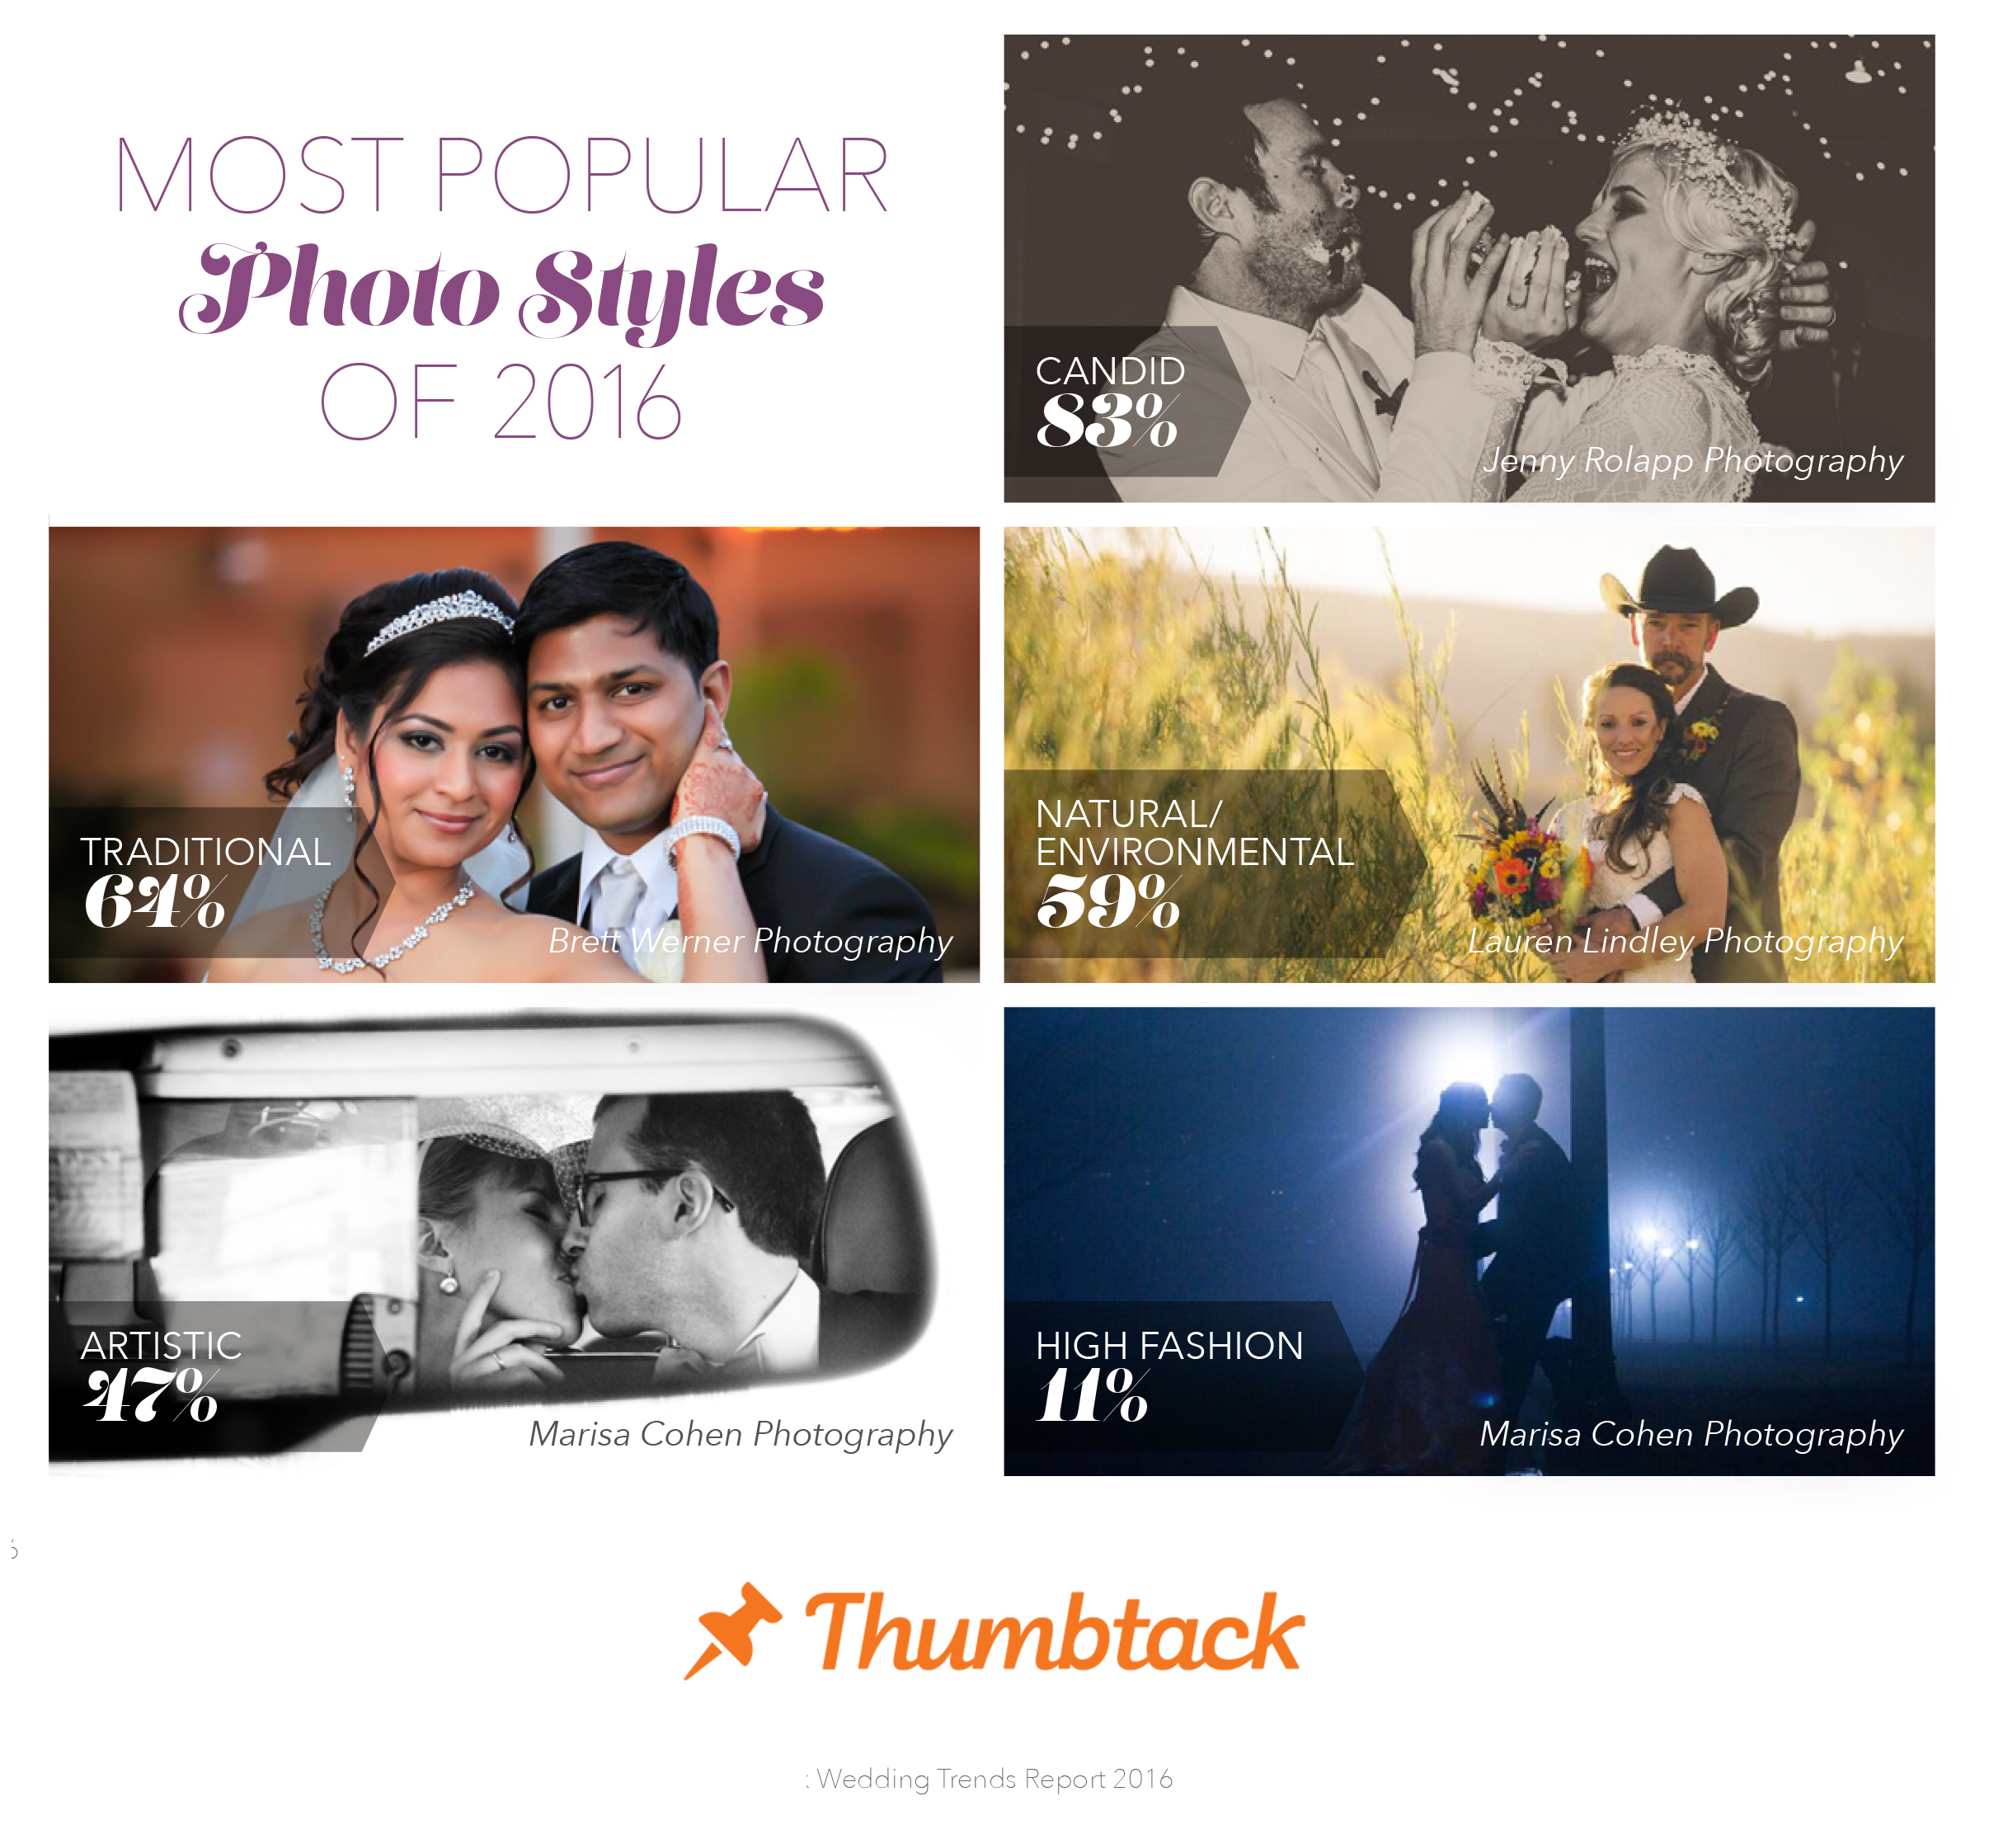 Photography - Thumbtack 2016 Wedding Trends Report